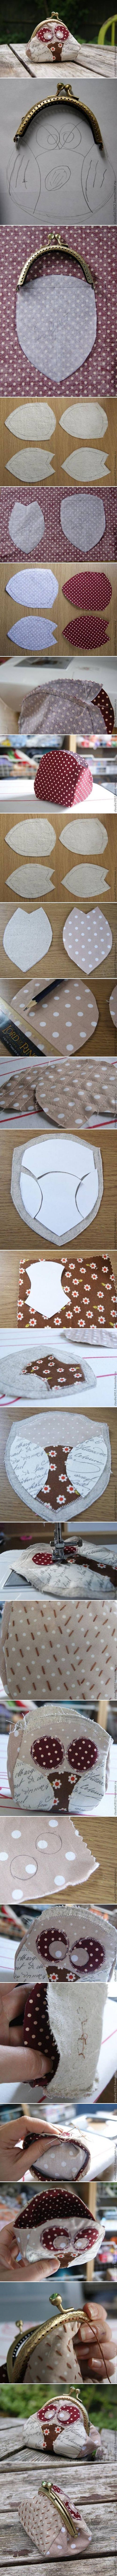 DIY Cute Fabric Owl Purse  diy crafts home made easy crafts craft idea crafts ideas diy ideas diy crafts diy idea do it yourself diy projects diy craft handmade craft clothes craft purse